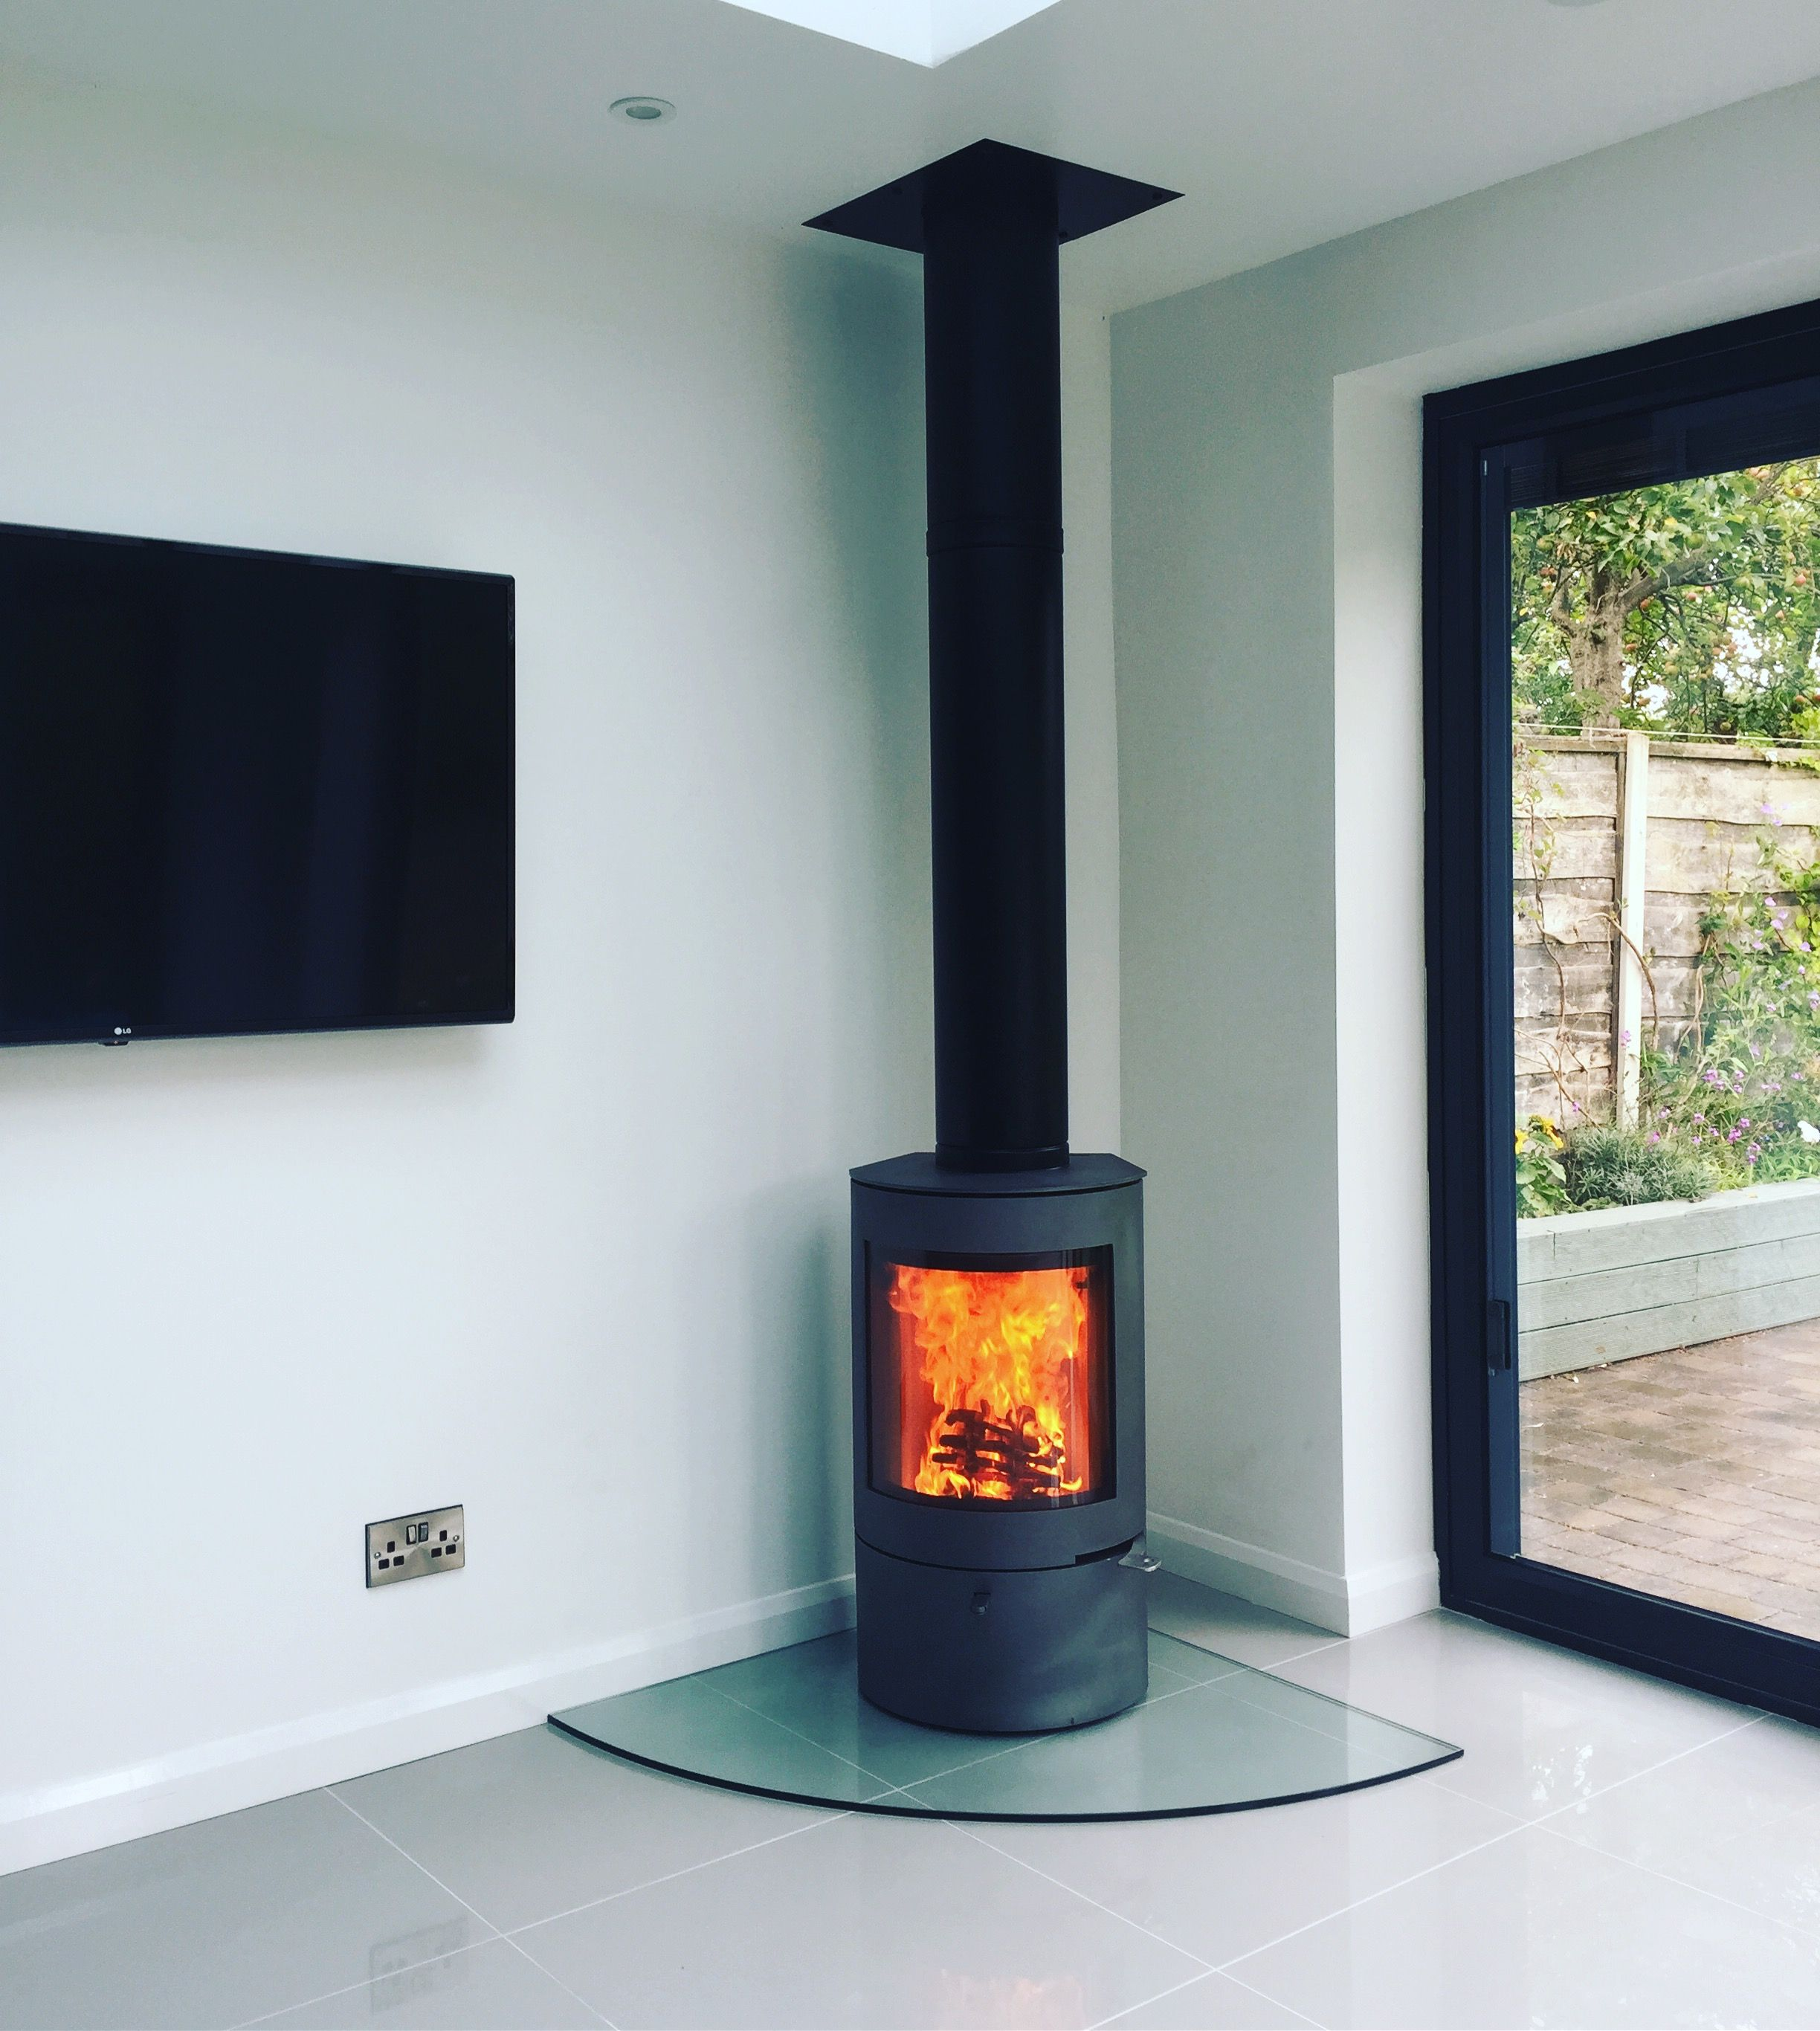 Westfire Uniq 21 With A Glass Hearth Installed In Bramhall Stove Twinwall Wood Burning Stoves Living Room Corner Wood Stove House Extension Design #wood #stove #in #living #room